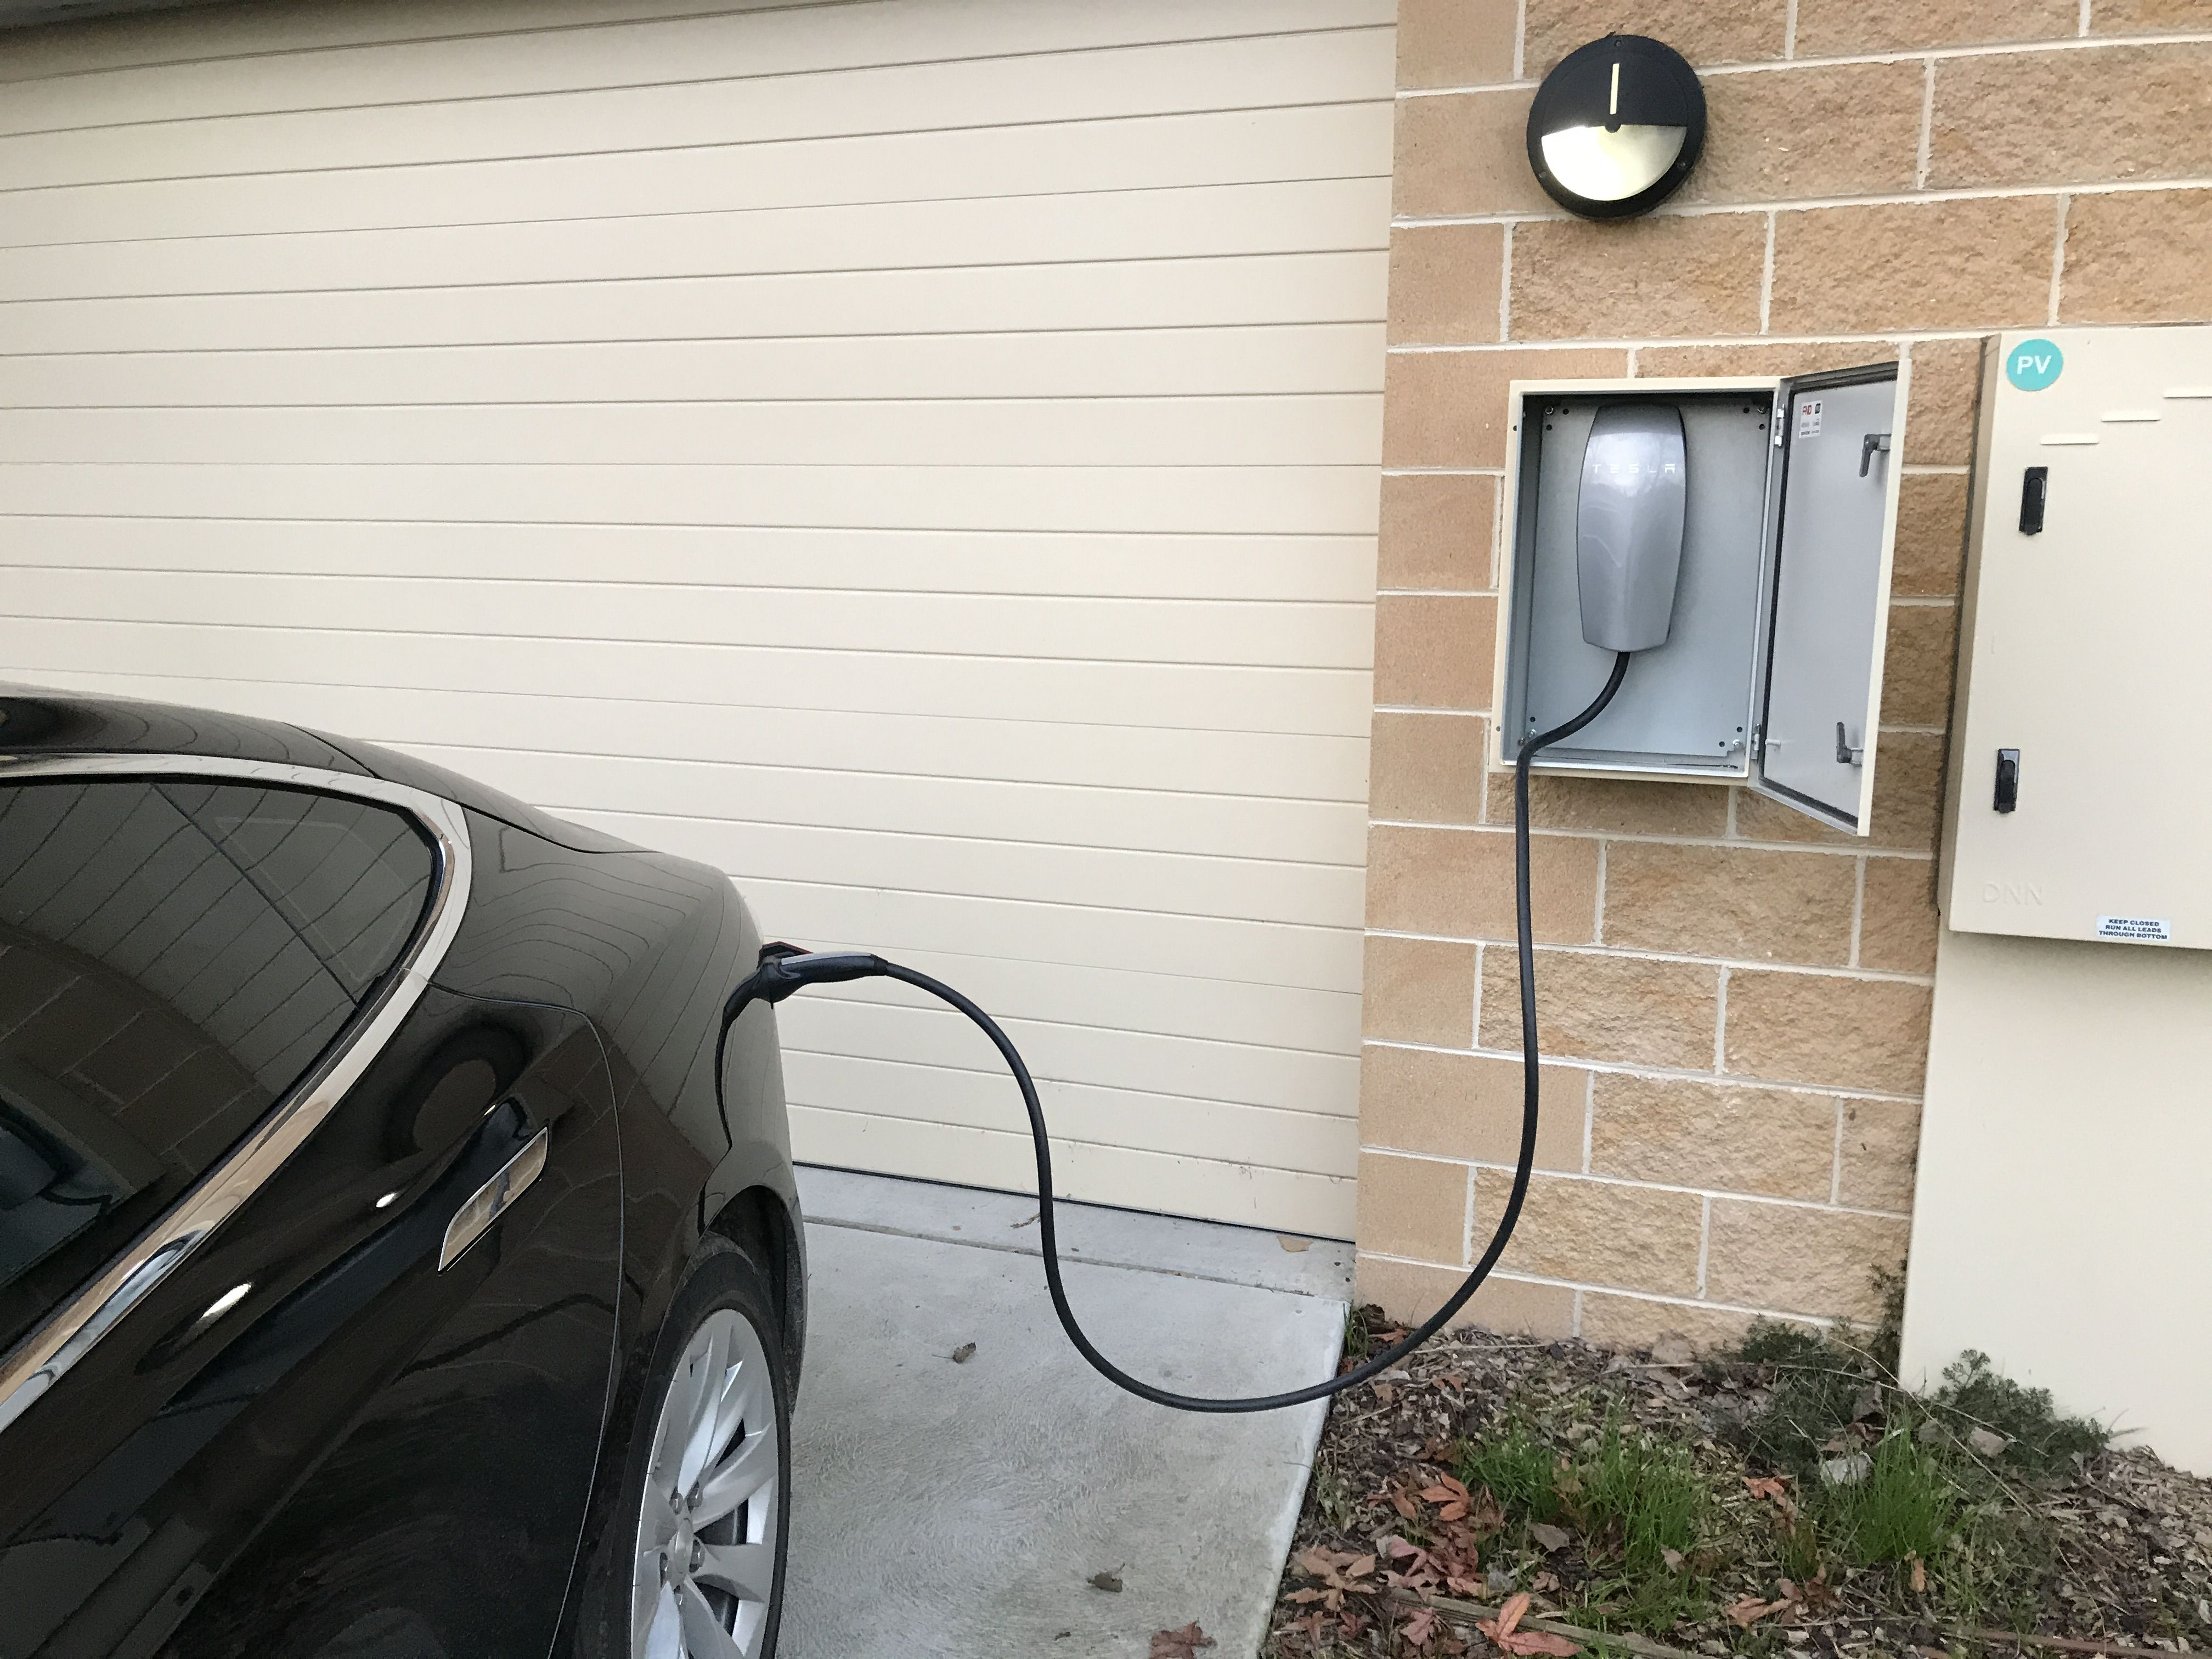 How To Charge Electric Car Guide Tesla Model X Tesla Model S Car Construction Tesla Model X Tesla Model Tesla Model S